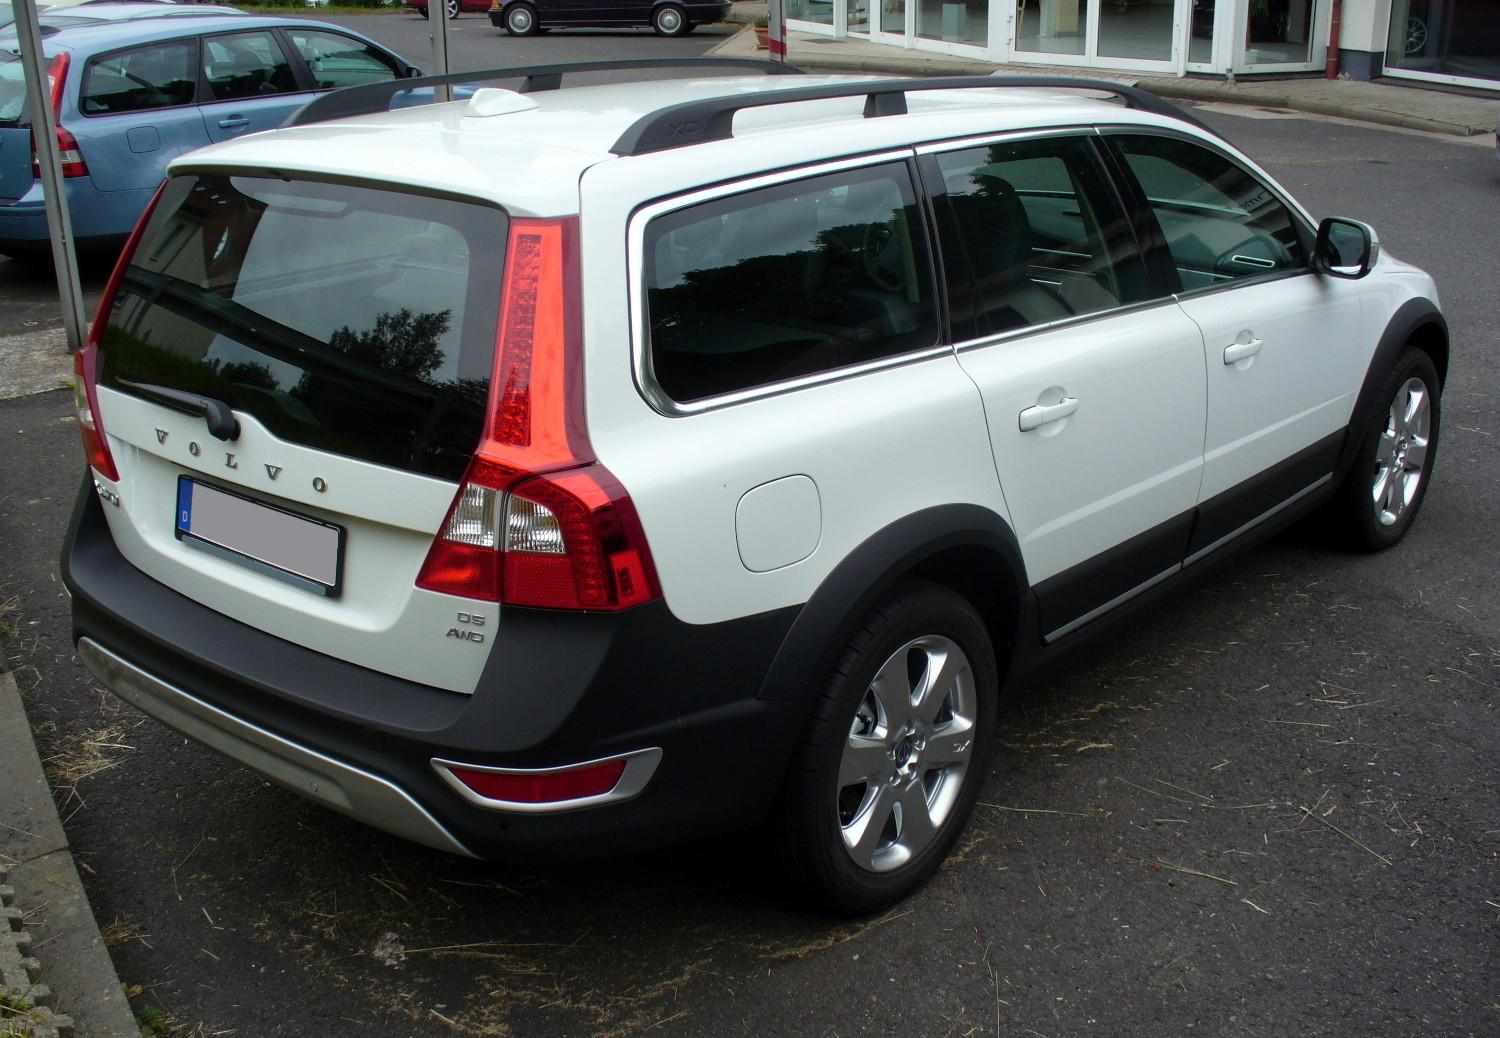 file volvo xc70 d5 awd heck jpg wikimedia commons. Black Bedroom Furniture Sets. Home Design Ideas